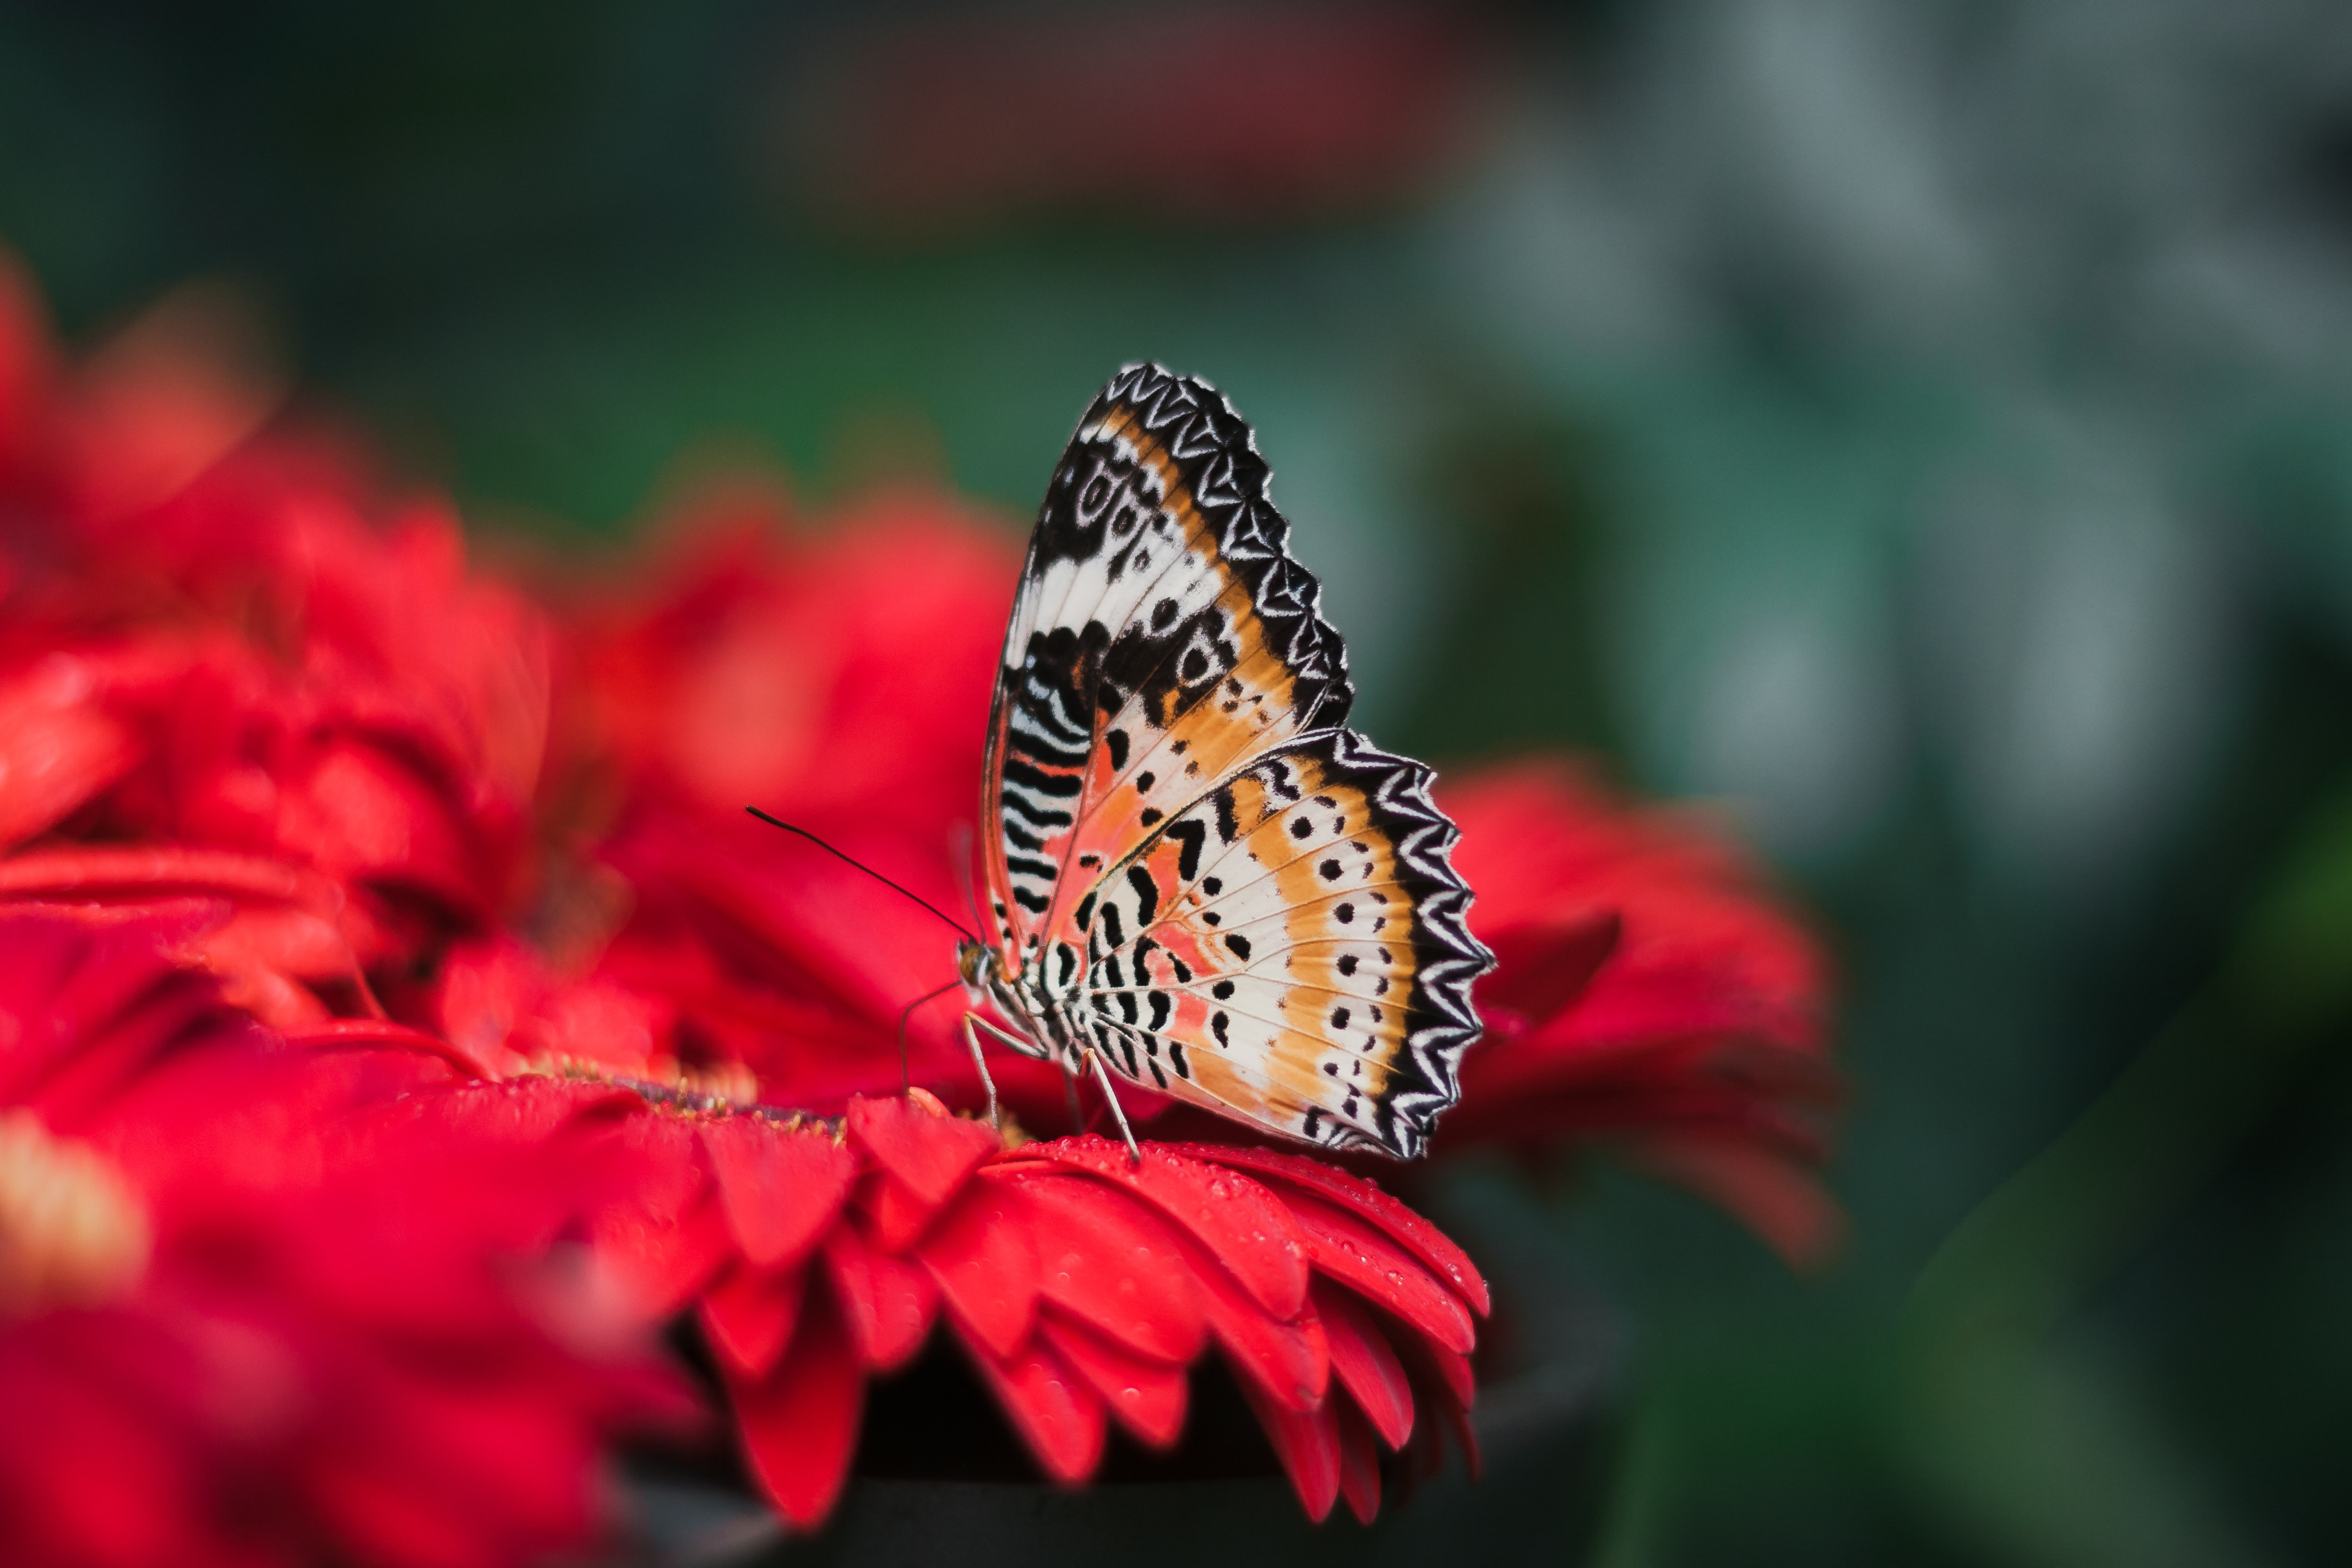 orange and black butterfly on red leaves